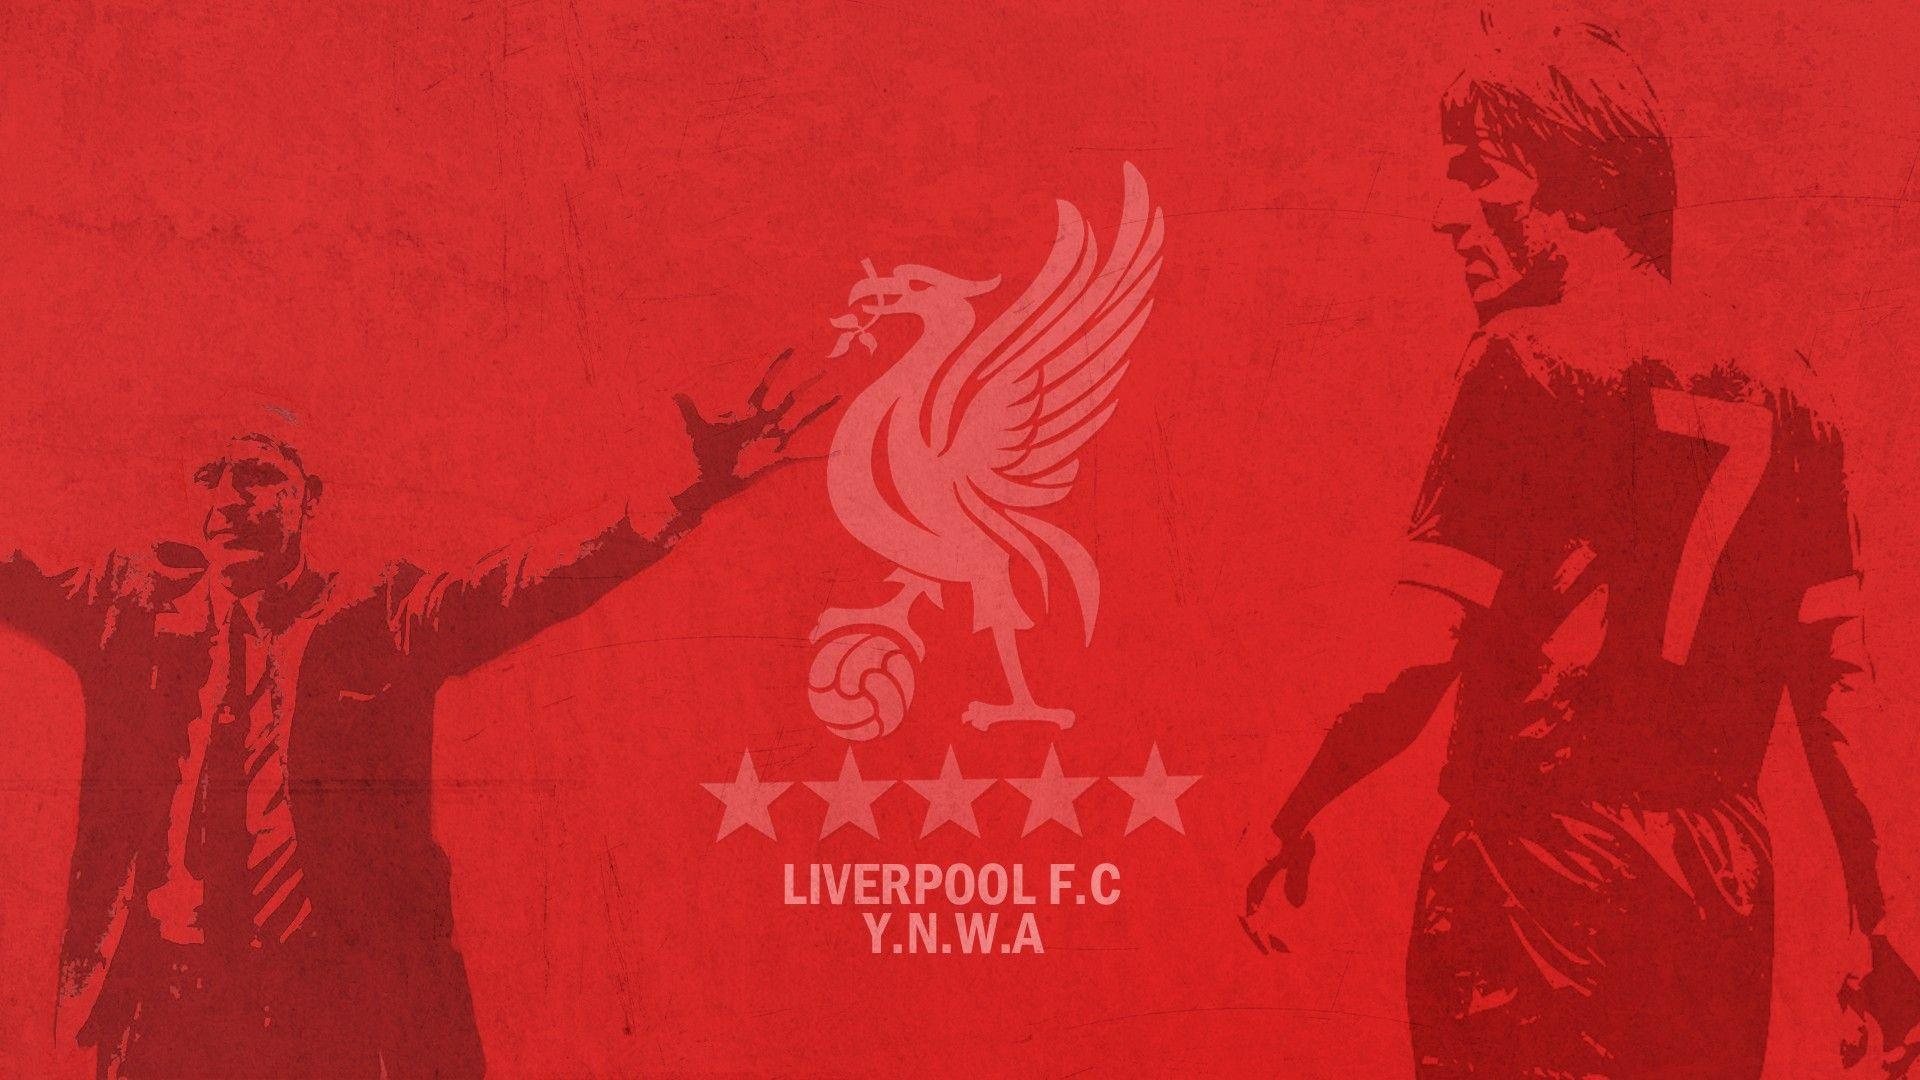 Liverpool FC wallpapers – wallpapers free download